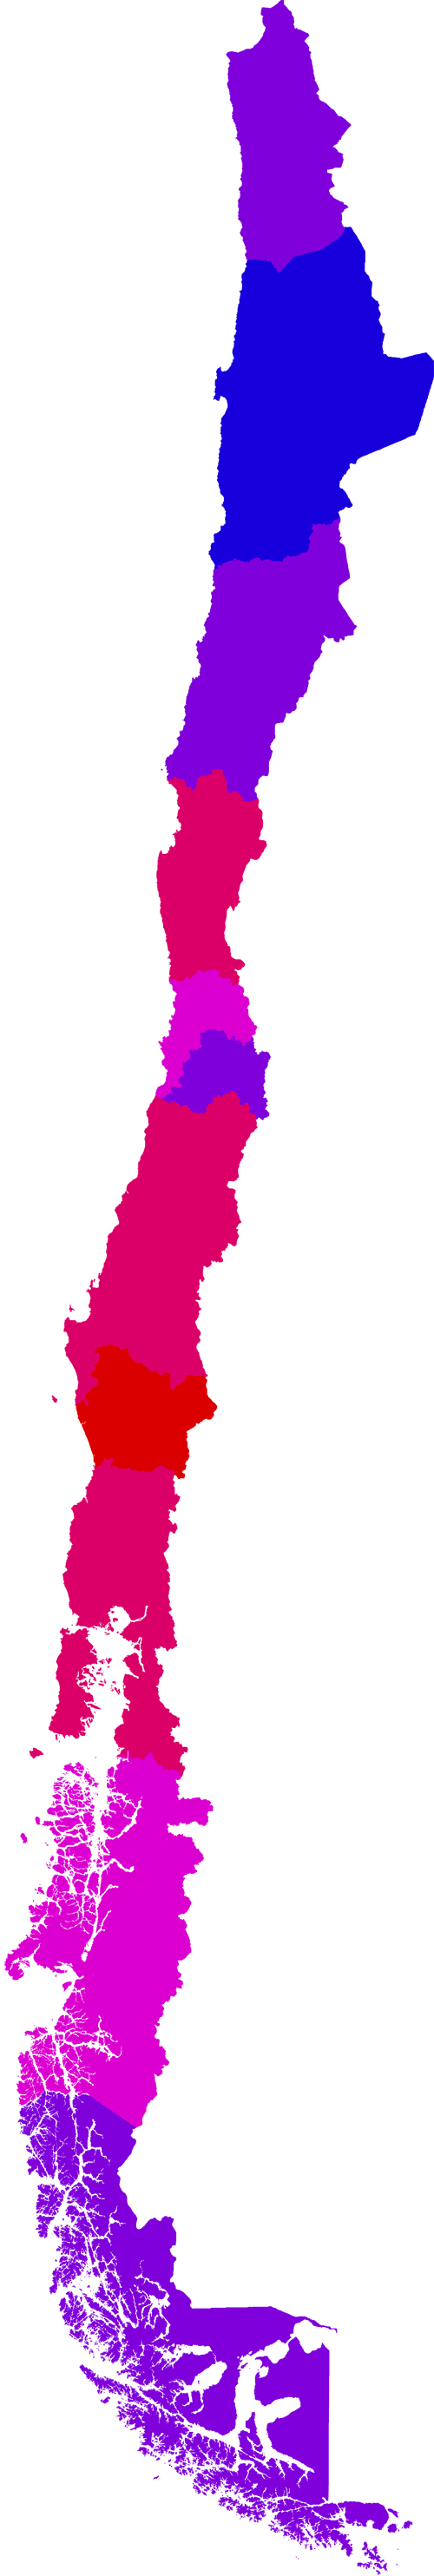 Chile Map With Regions File Regions of Chile by Human